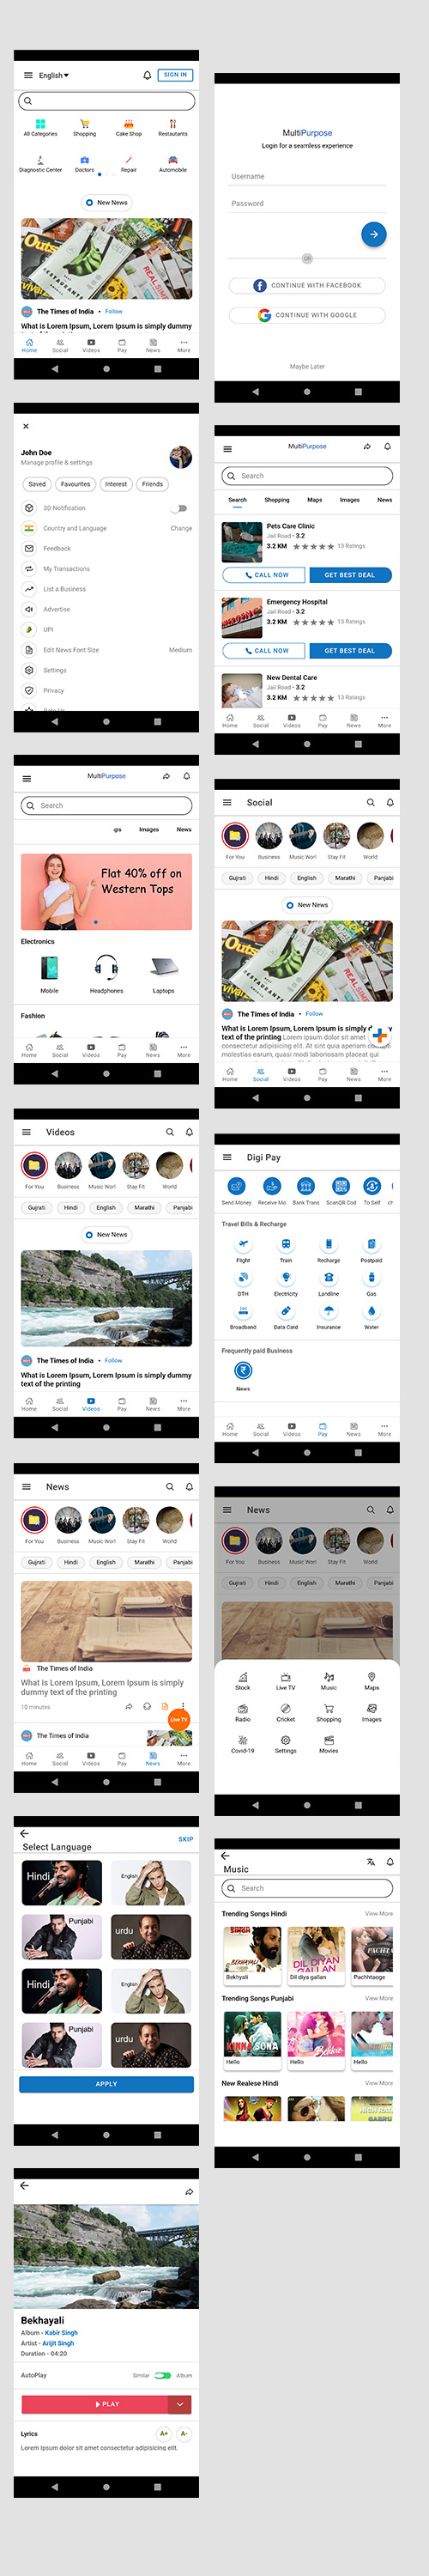 ionic 5 template bundle  / ionic 5 themes bundles / ionic 5 templates with 10+ apps - 7